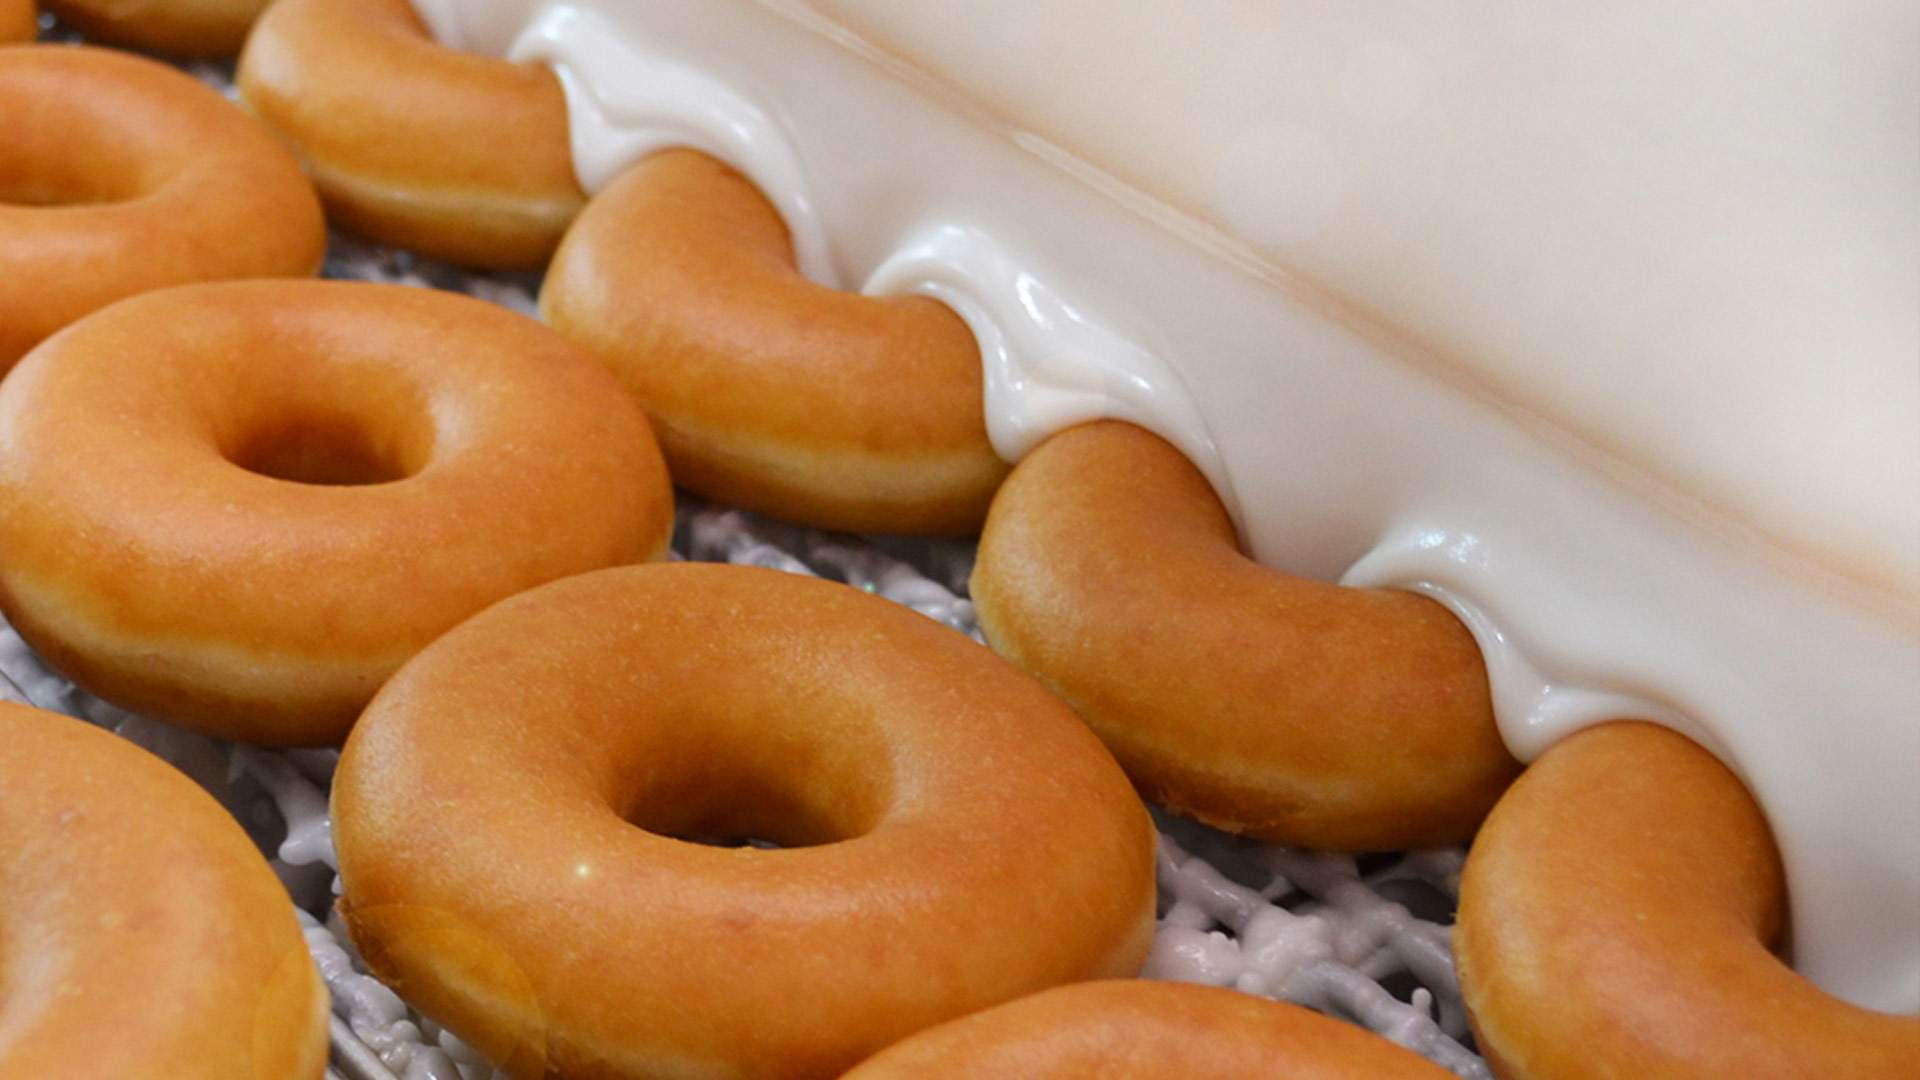 Krispy Kreme offering free doughnuts to celebrate 83rd birthday